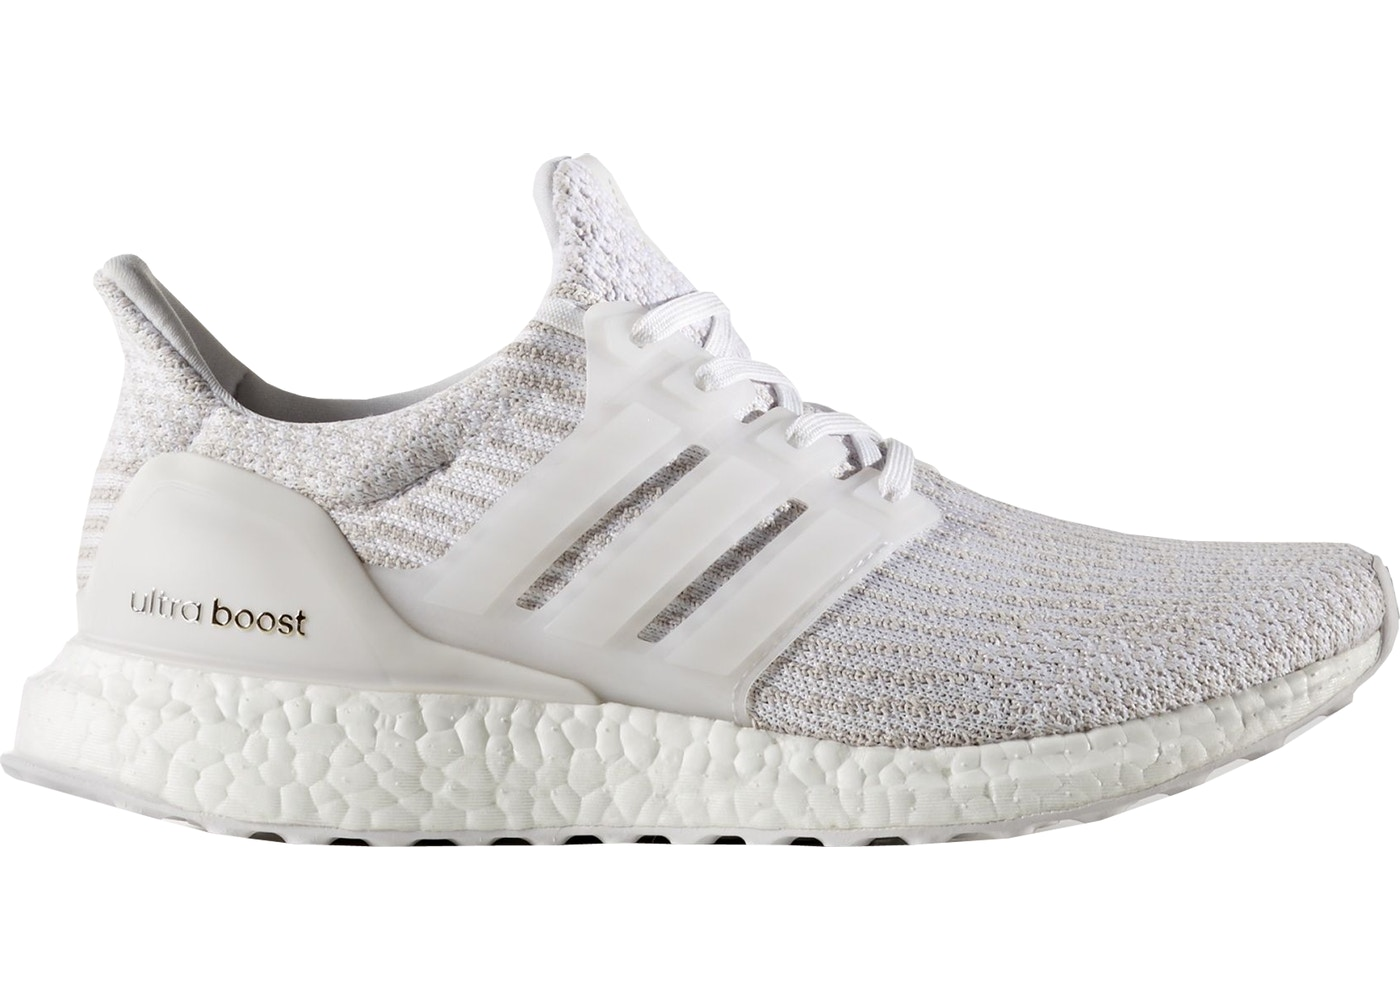 separation shoes 66a97 f5a97 adidas Ultra Boost 3.0 White Pearl Grey (W)